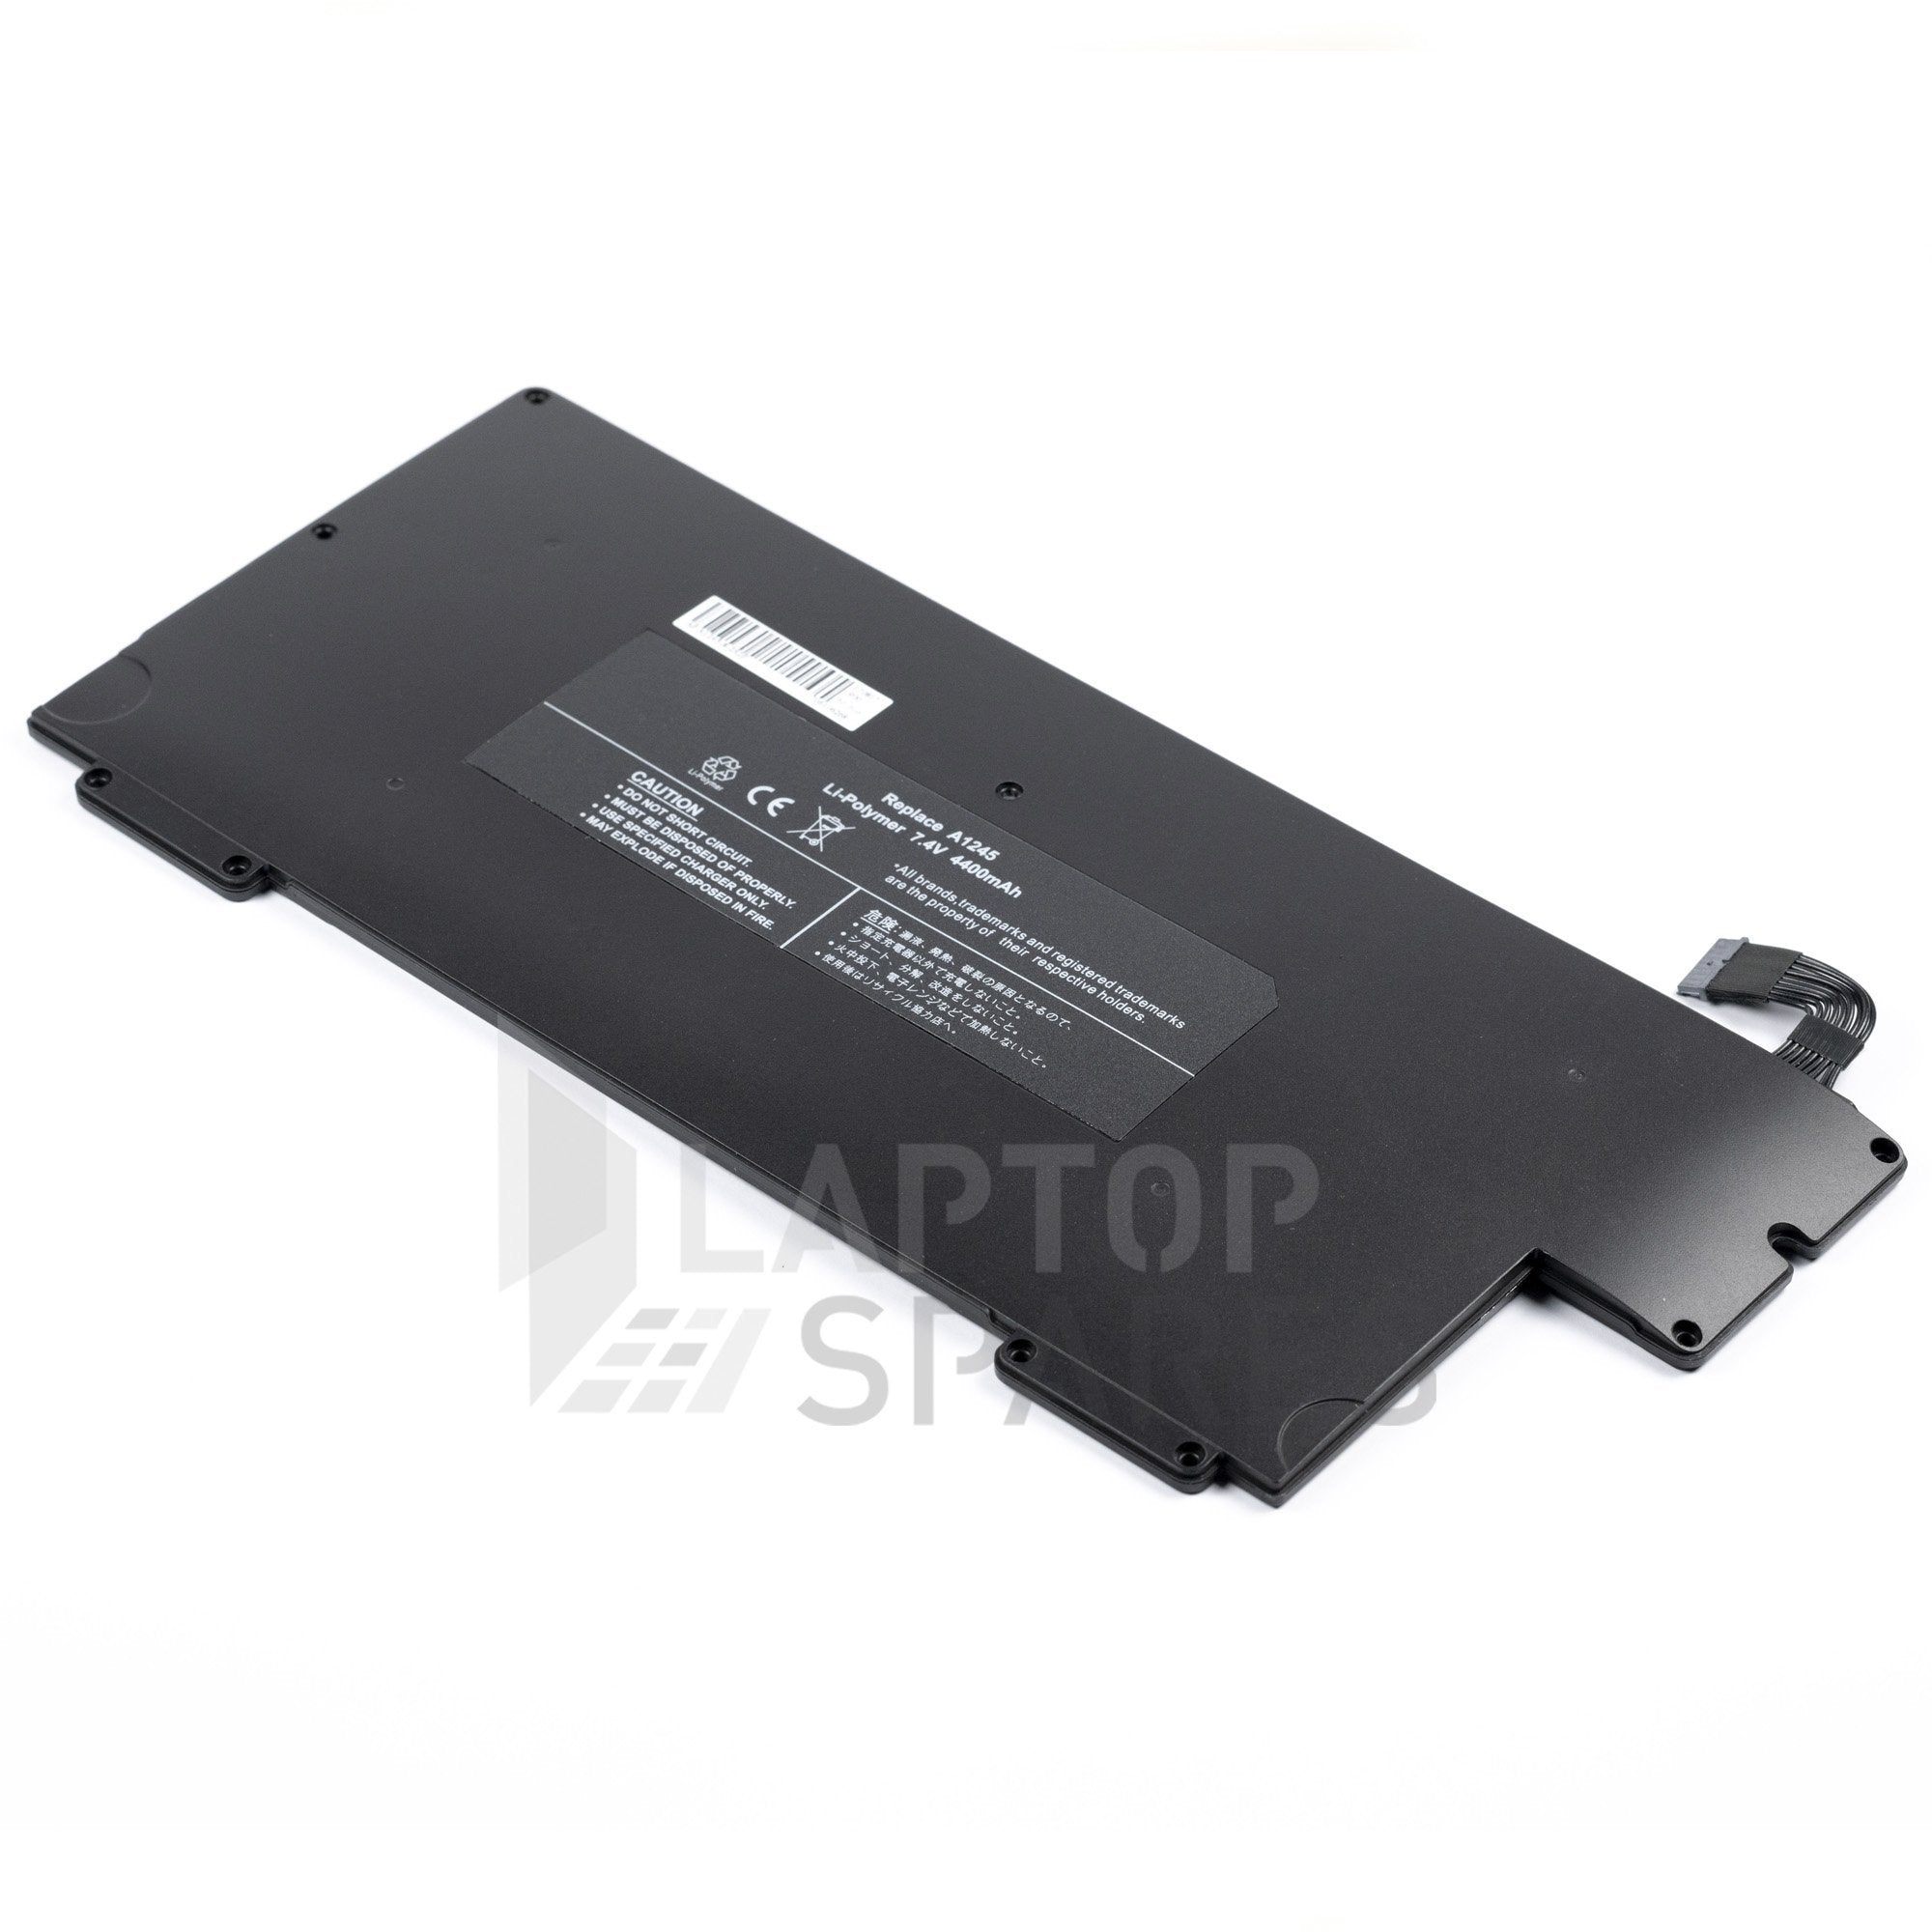 Apple MacBook Air 13 inch MB003 4400mAh 3 Cell Battery